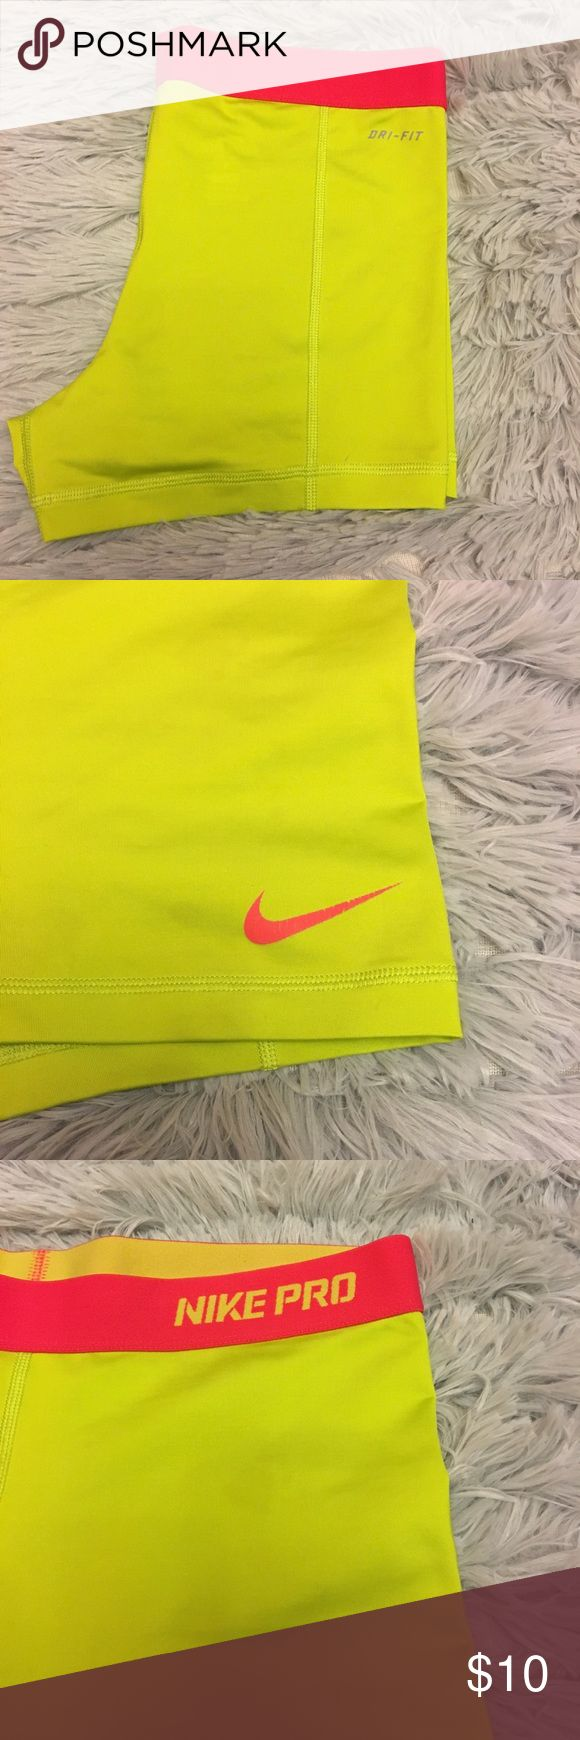 Bright Neon Running Shorts Nike Running Shorts. Bright Neon Yellow With Hot Pink Waist Band. Good Condition. Nike Shorts